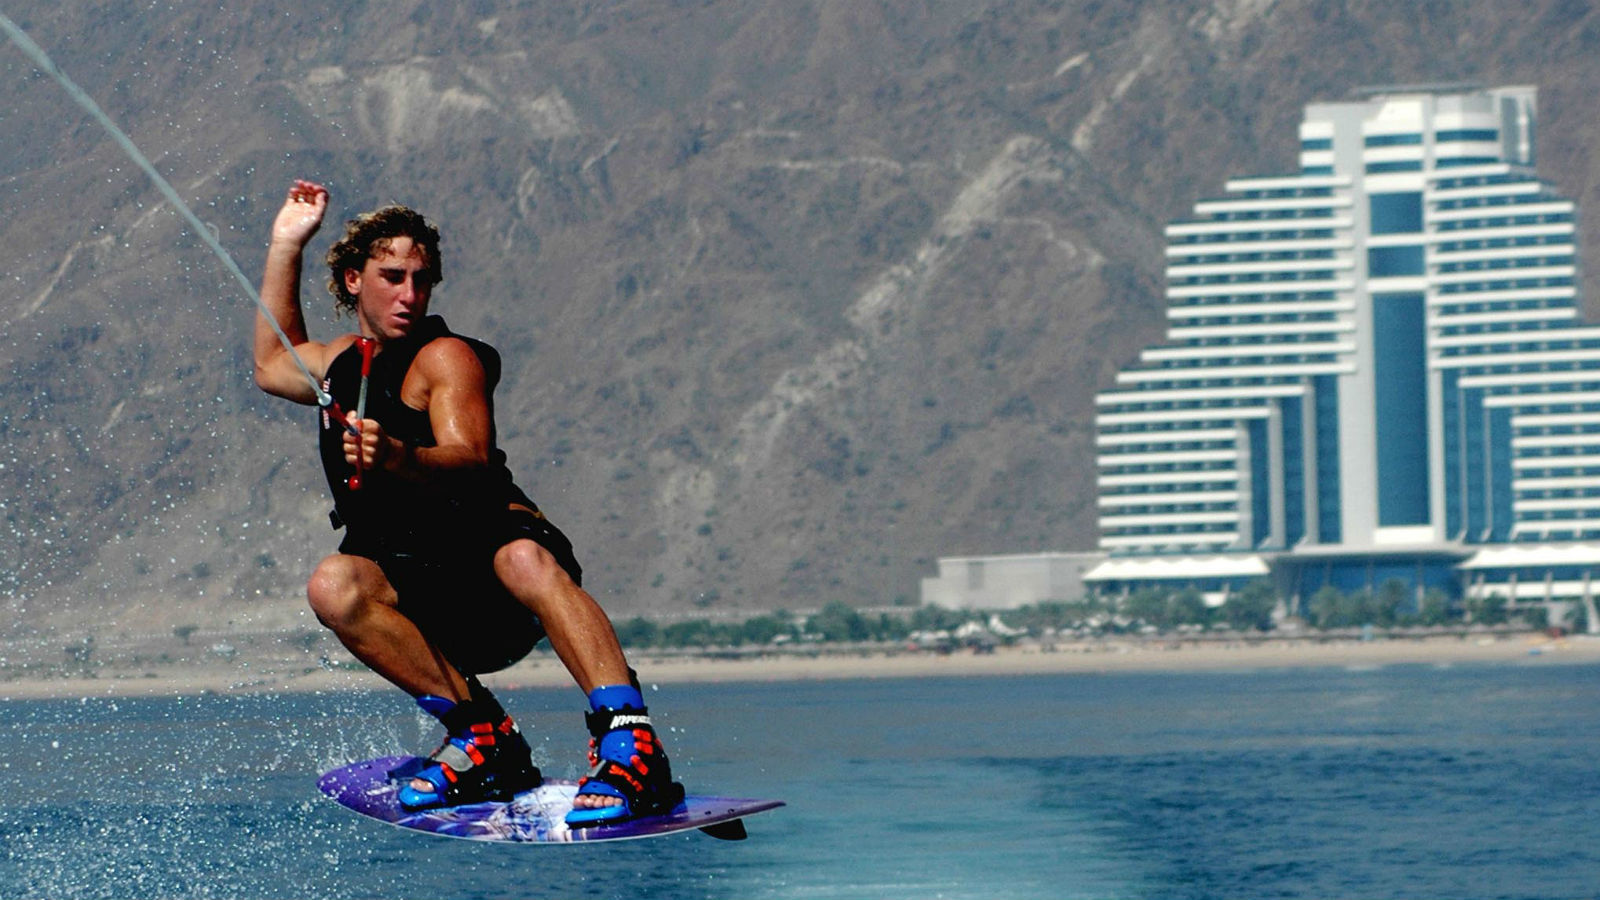 Water Ski in Fujairah